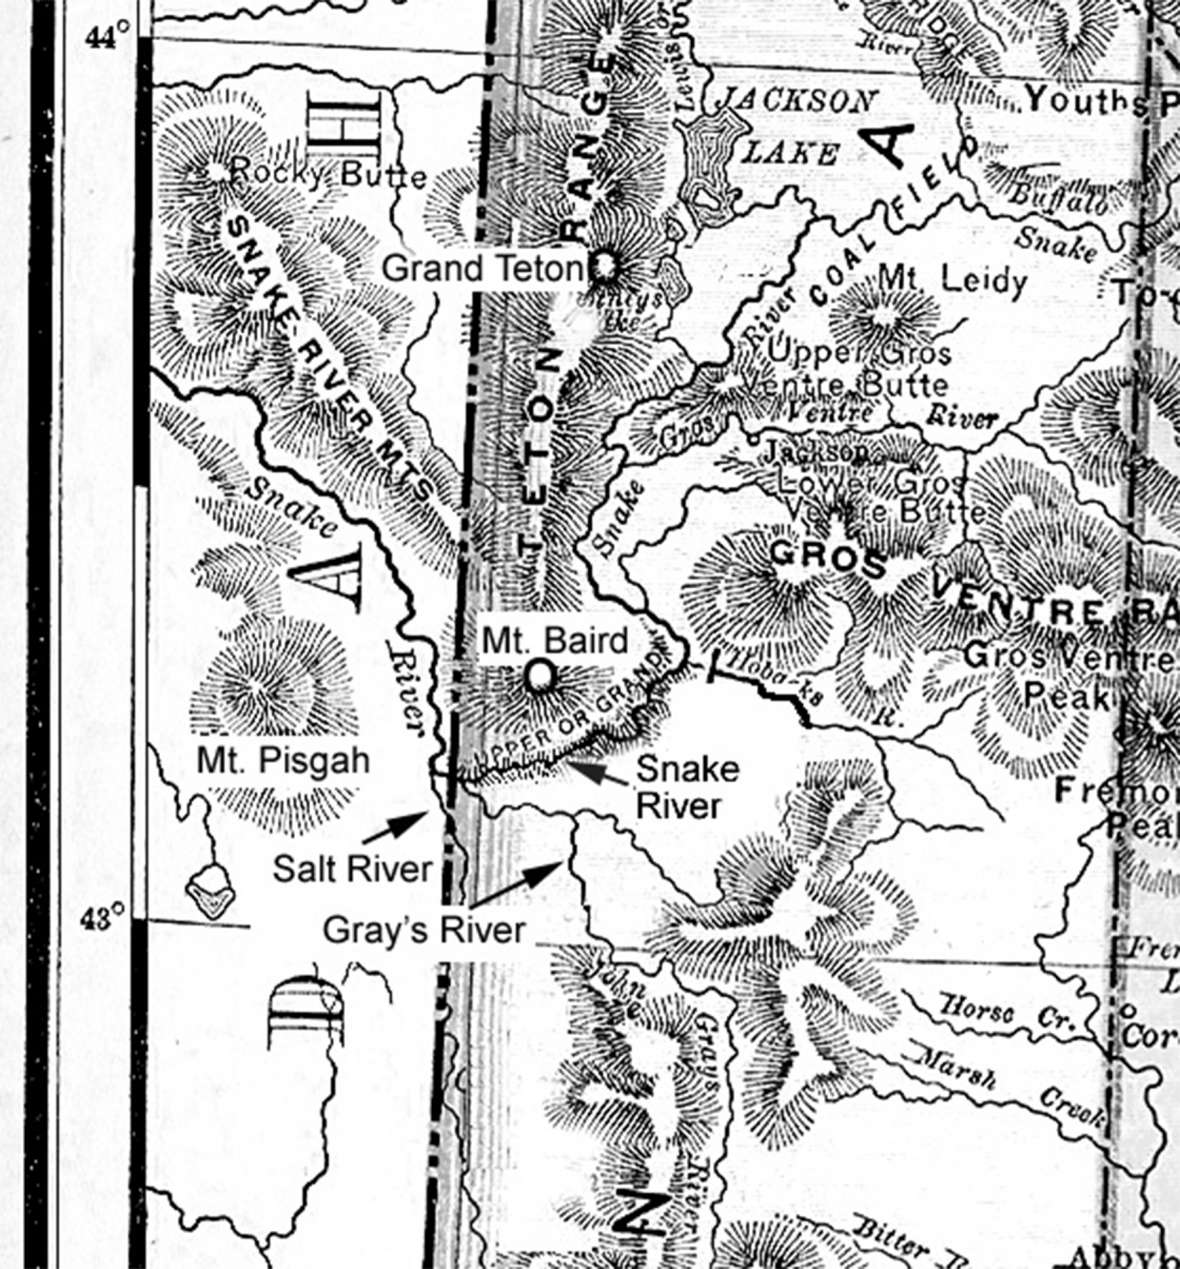 Part of an early map of Wyoming Territory showing the confluence of the Snake, Gray's and Salt rivers near present Alpine, Wyo. south of Jackson, where the survey party had such a difficult time crossing the Snake Rier. Author's collection.